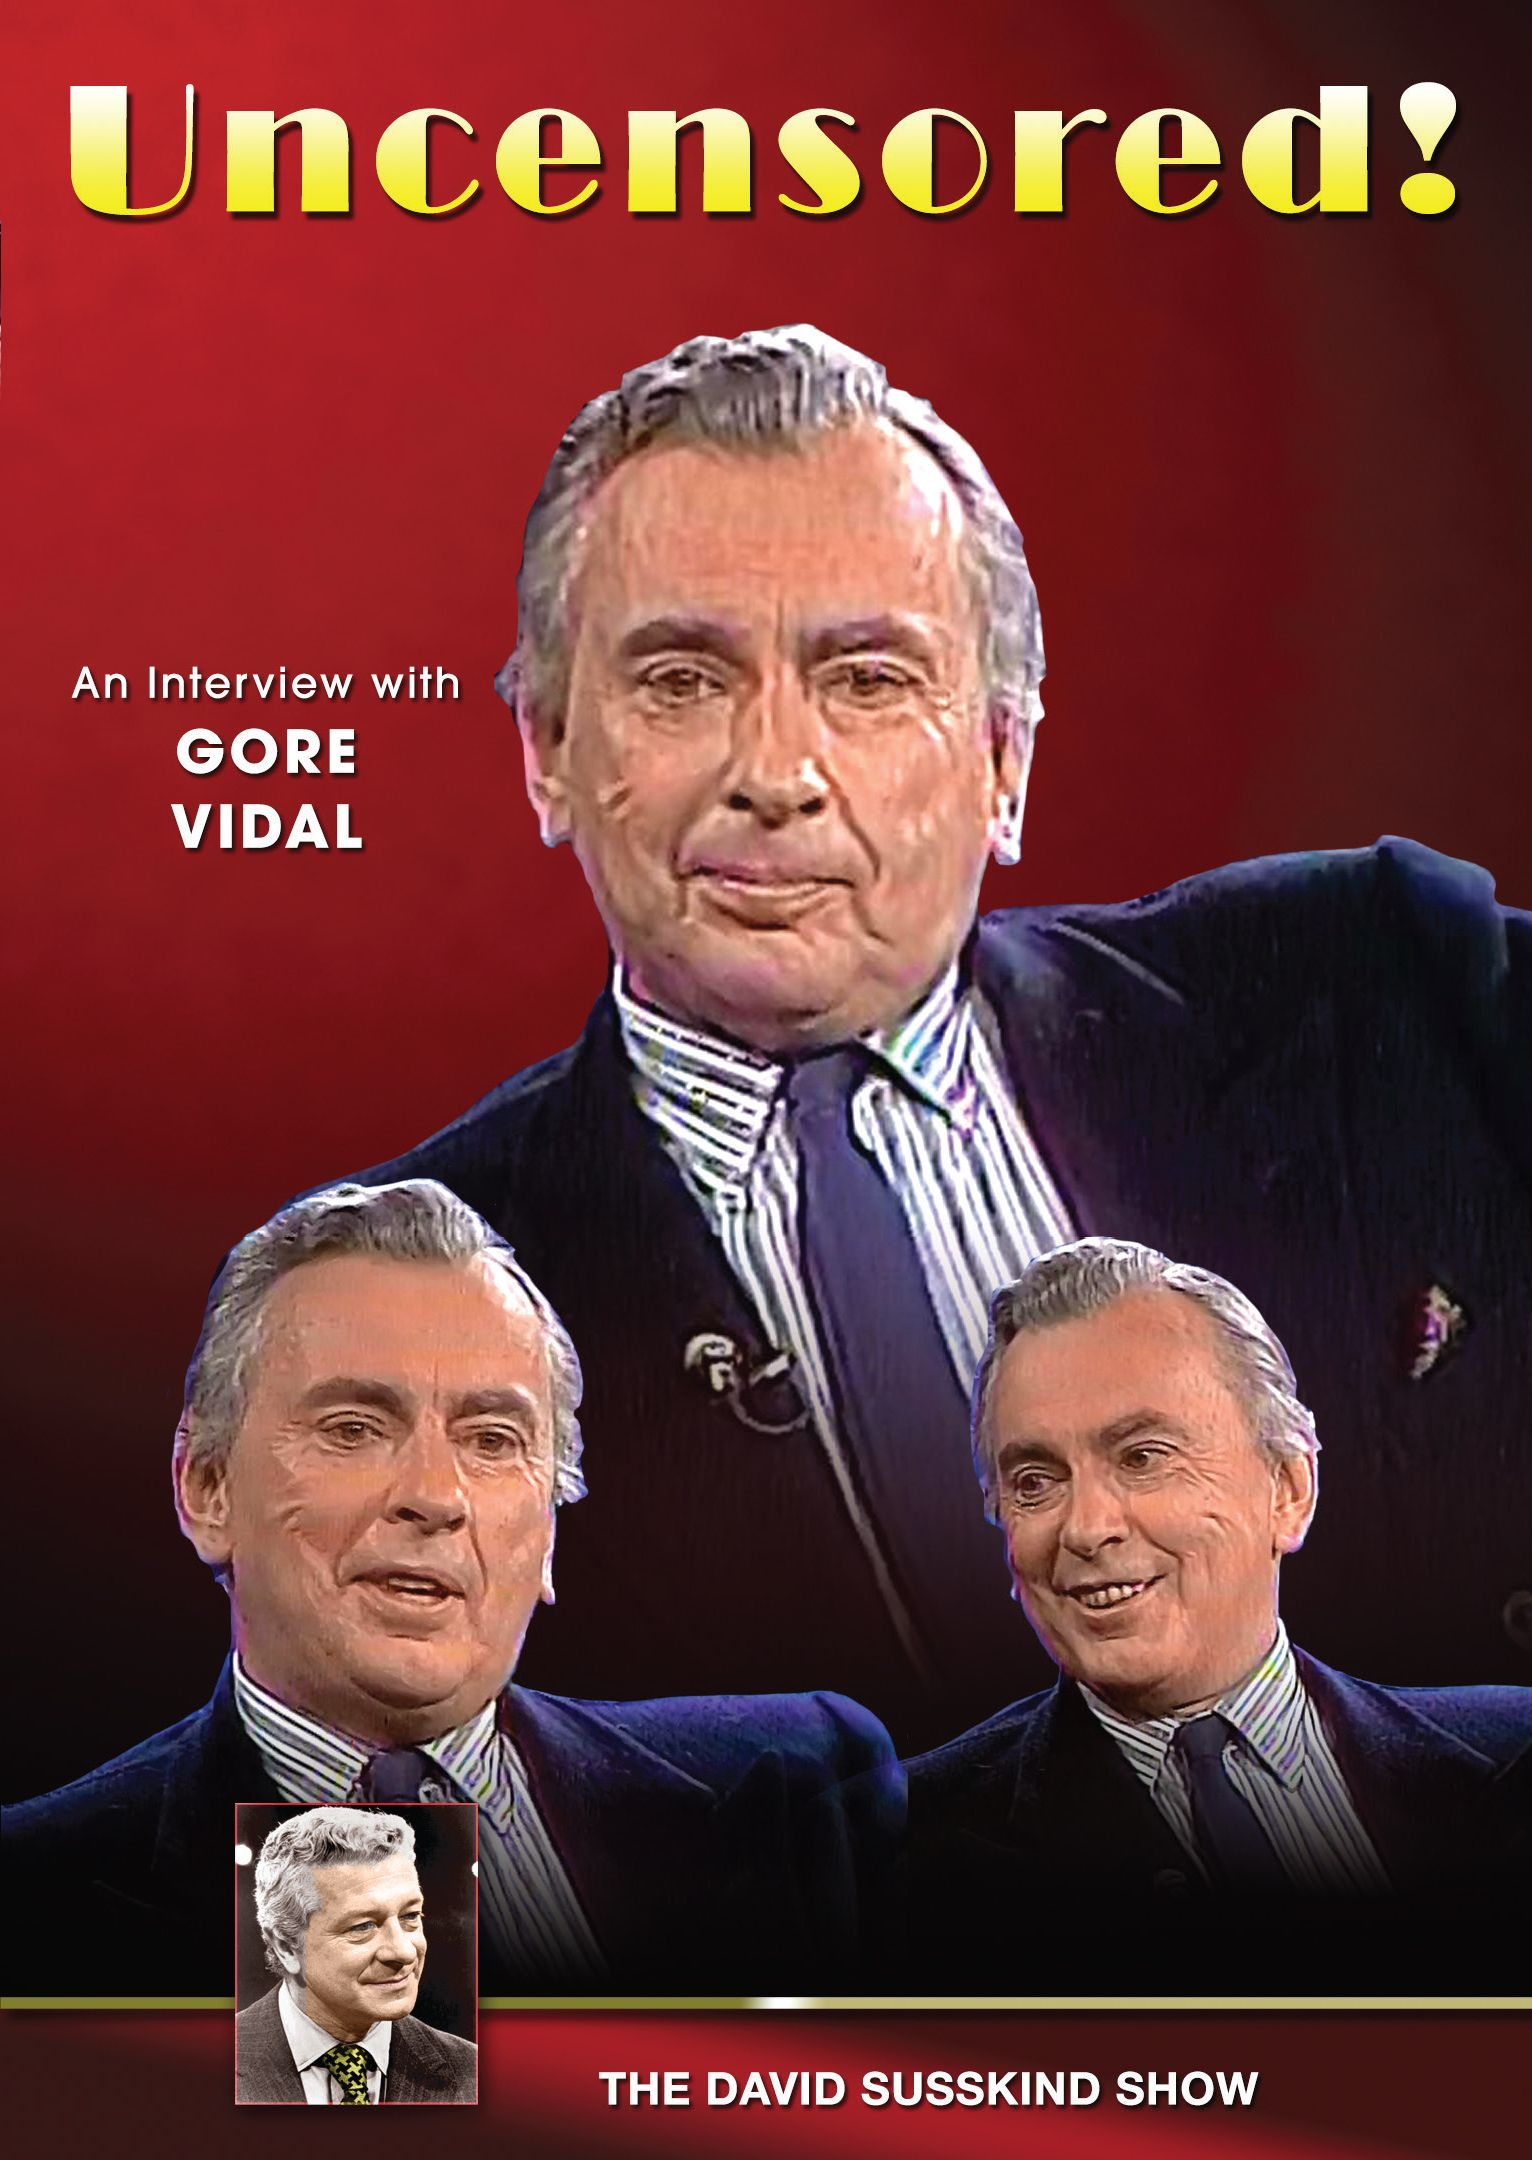 The David Susskind Show: Uncensored! - An Interview with Gore Vidal